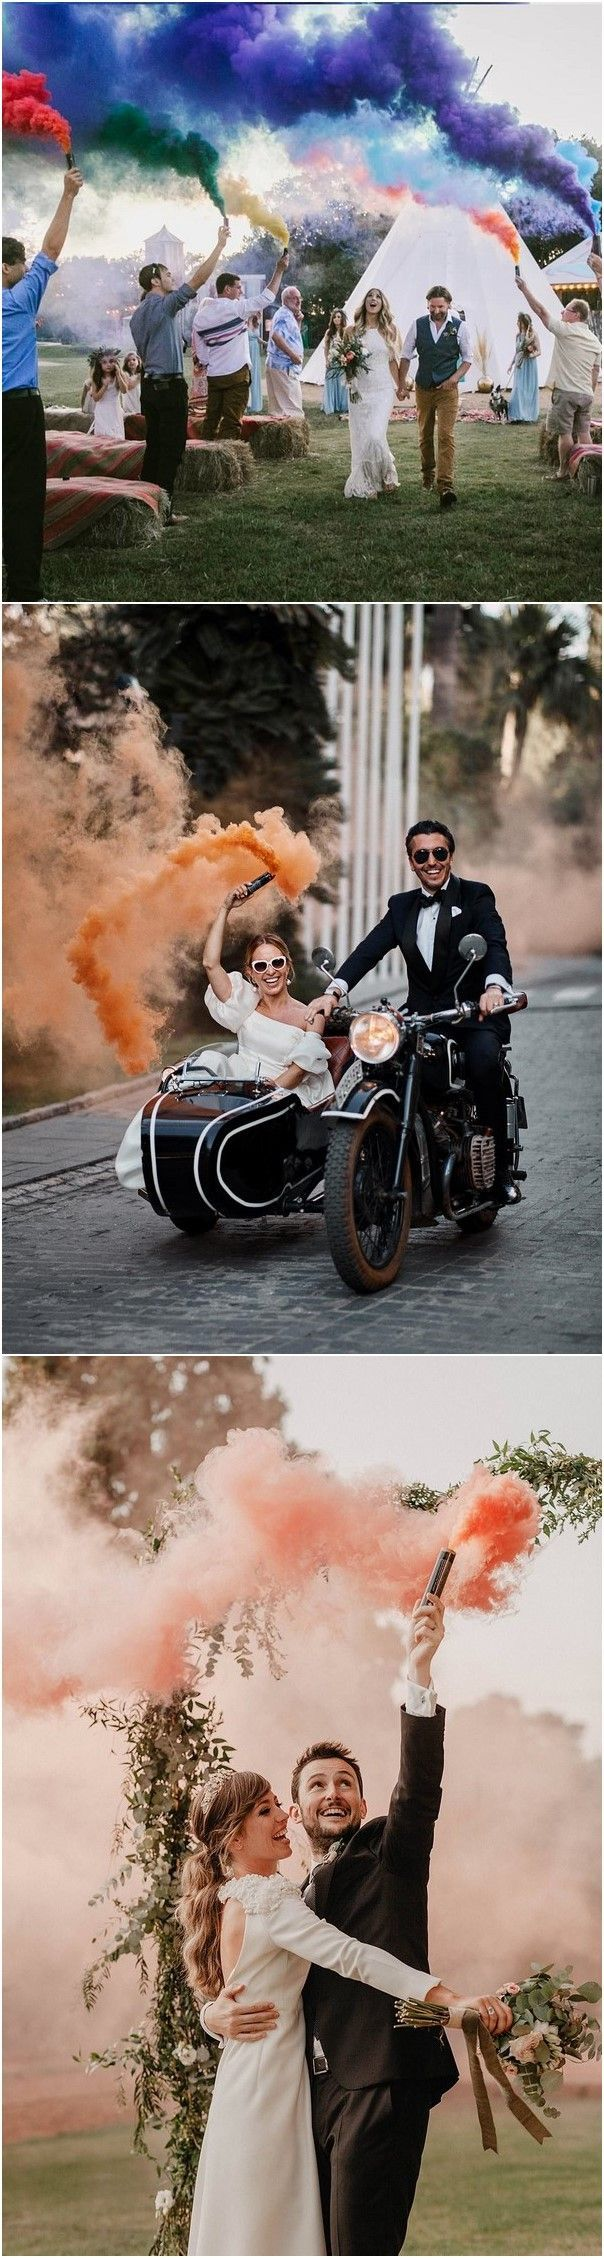 15 Cool & Colorful Smoke Bomb Wedding Photo Inspir…